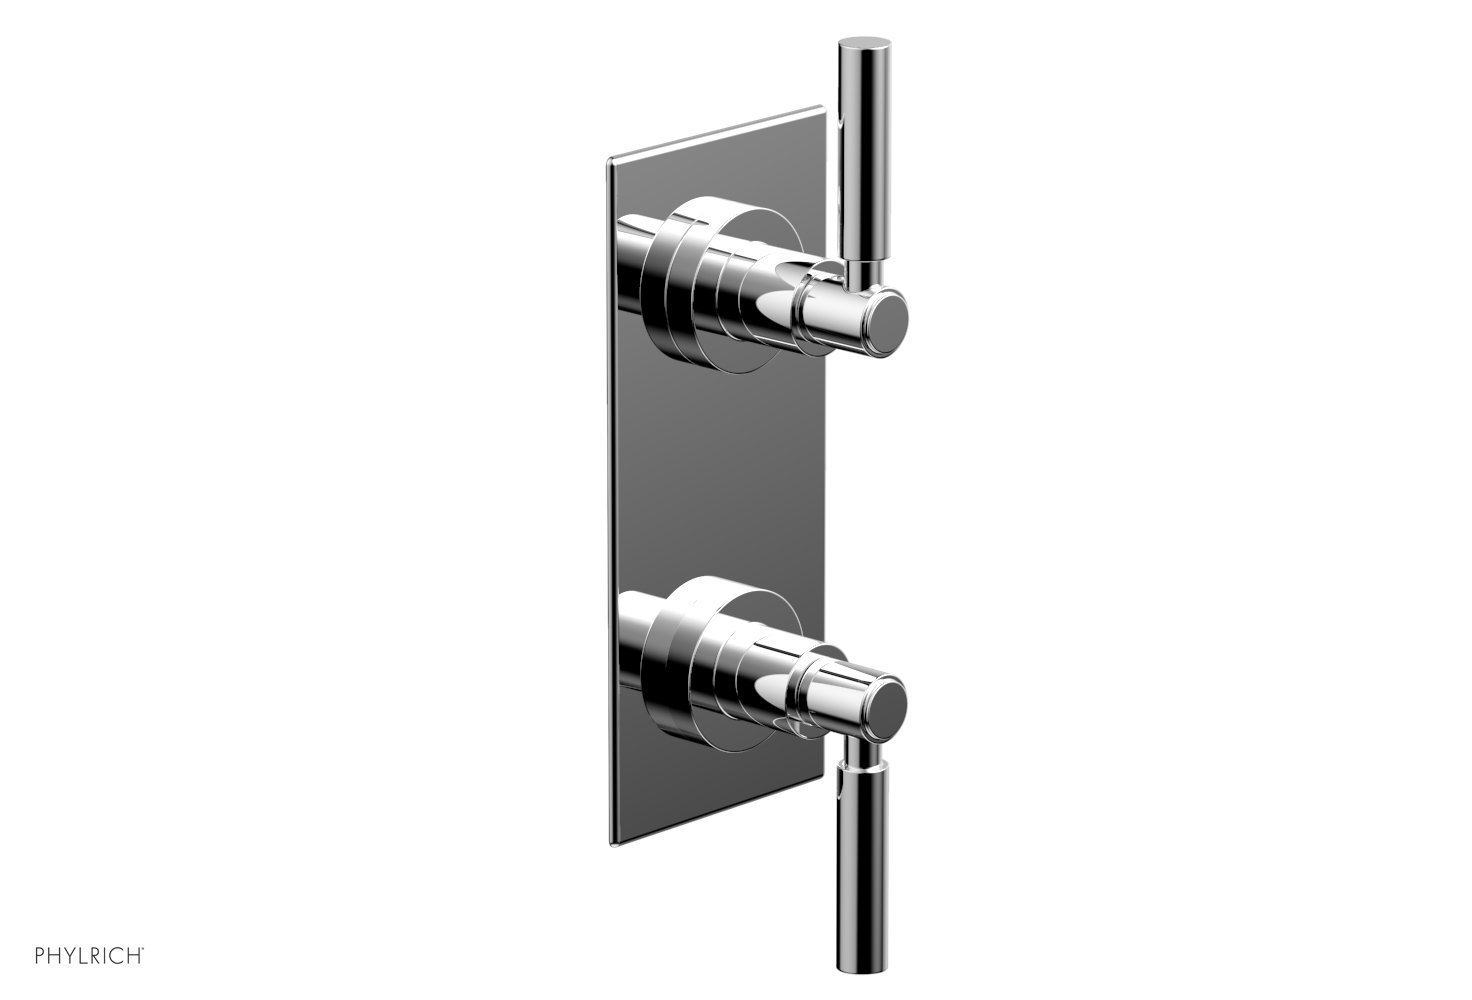 """BASIC 1/2"""" Thermostatic Valve with Volume Control or Diverter Lever Handles 4-344 - Polished Chrome"""